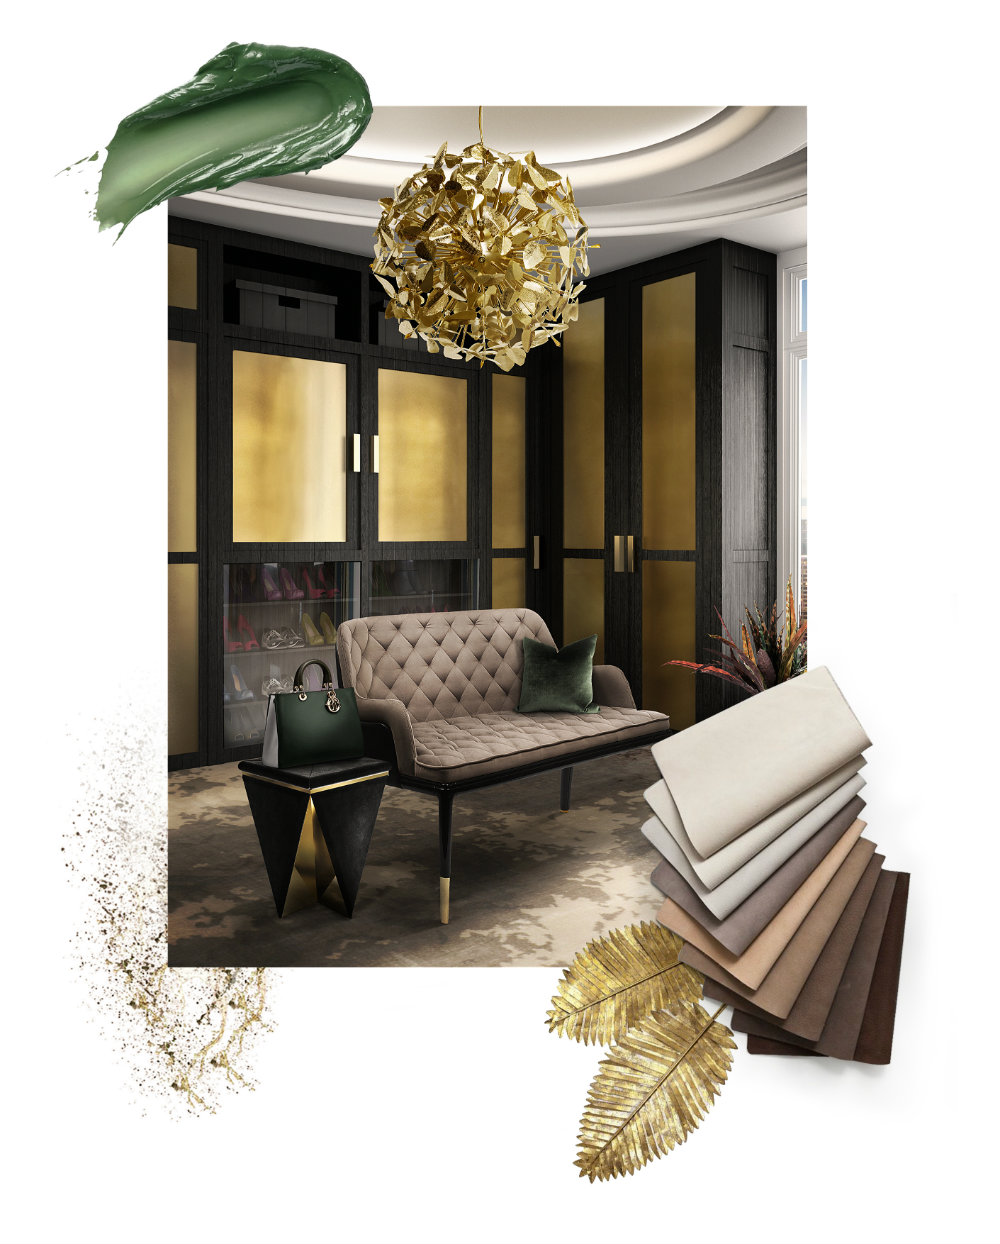 Timeless Fall Trends with LUXXU Home Tiffany & Co. Tiffany & Co. Concept Stores Are Opening Around NYC Timeless Fall Trends with LUXXU Home 01 Tiffany & Co. Tiffany & Co. Concept Stores Are Opening Around NYC Timeless Fall Trends with LUXXU Home 01